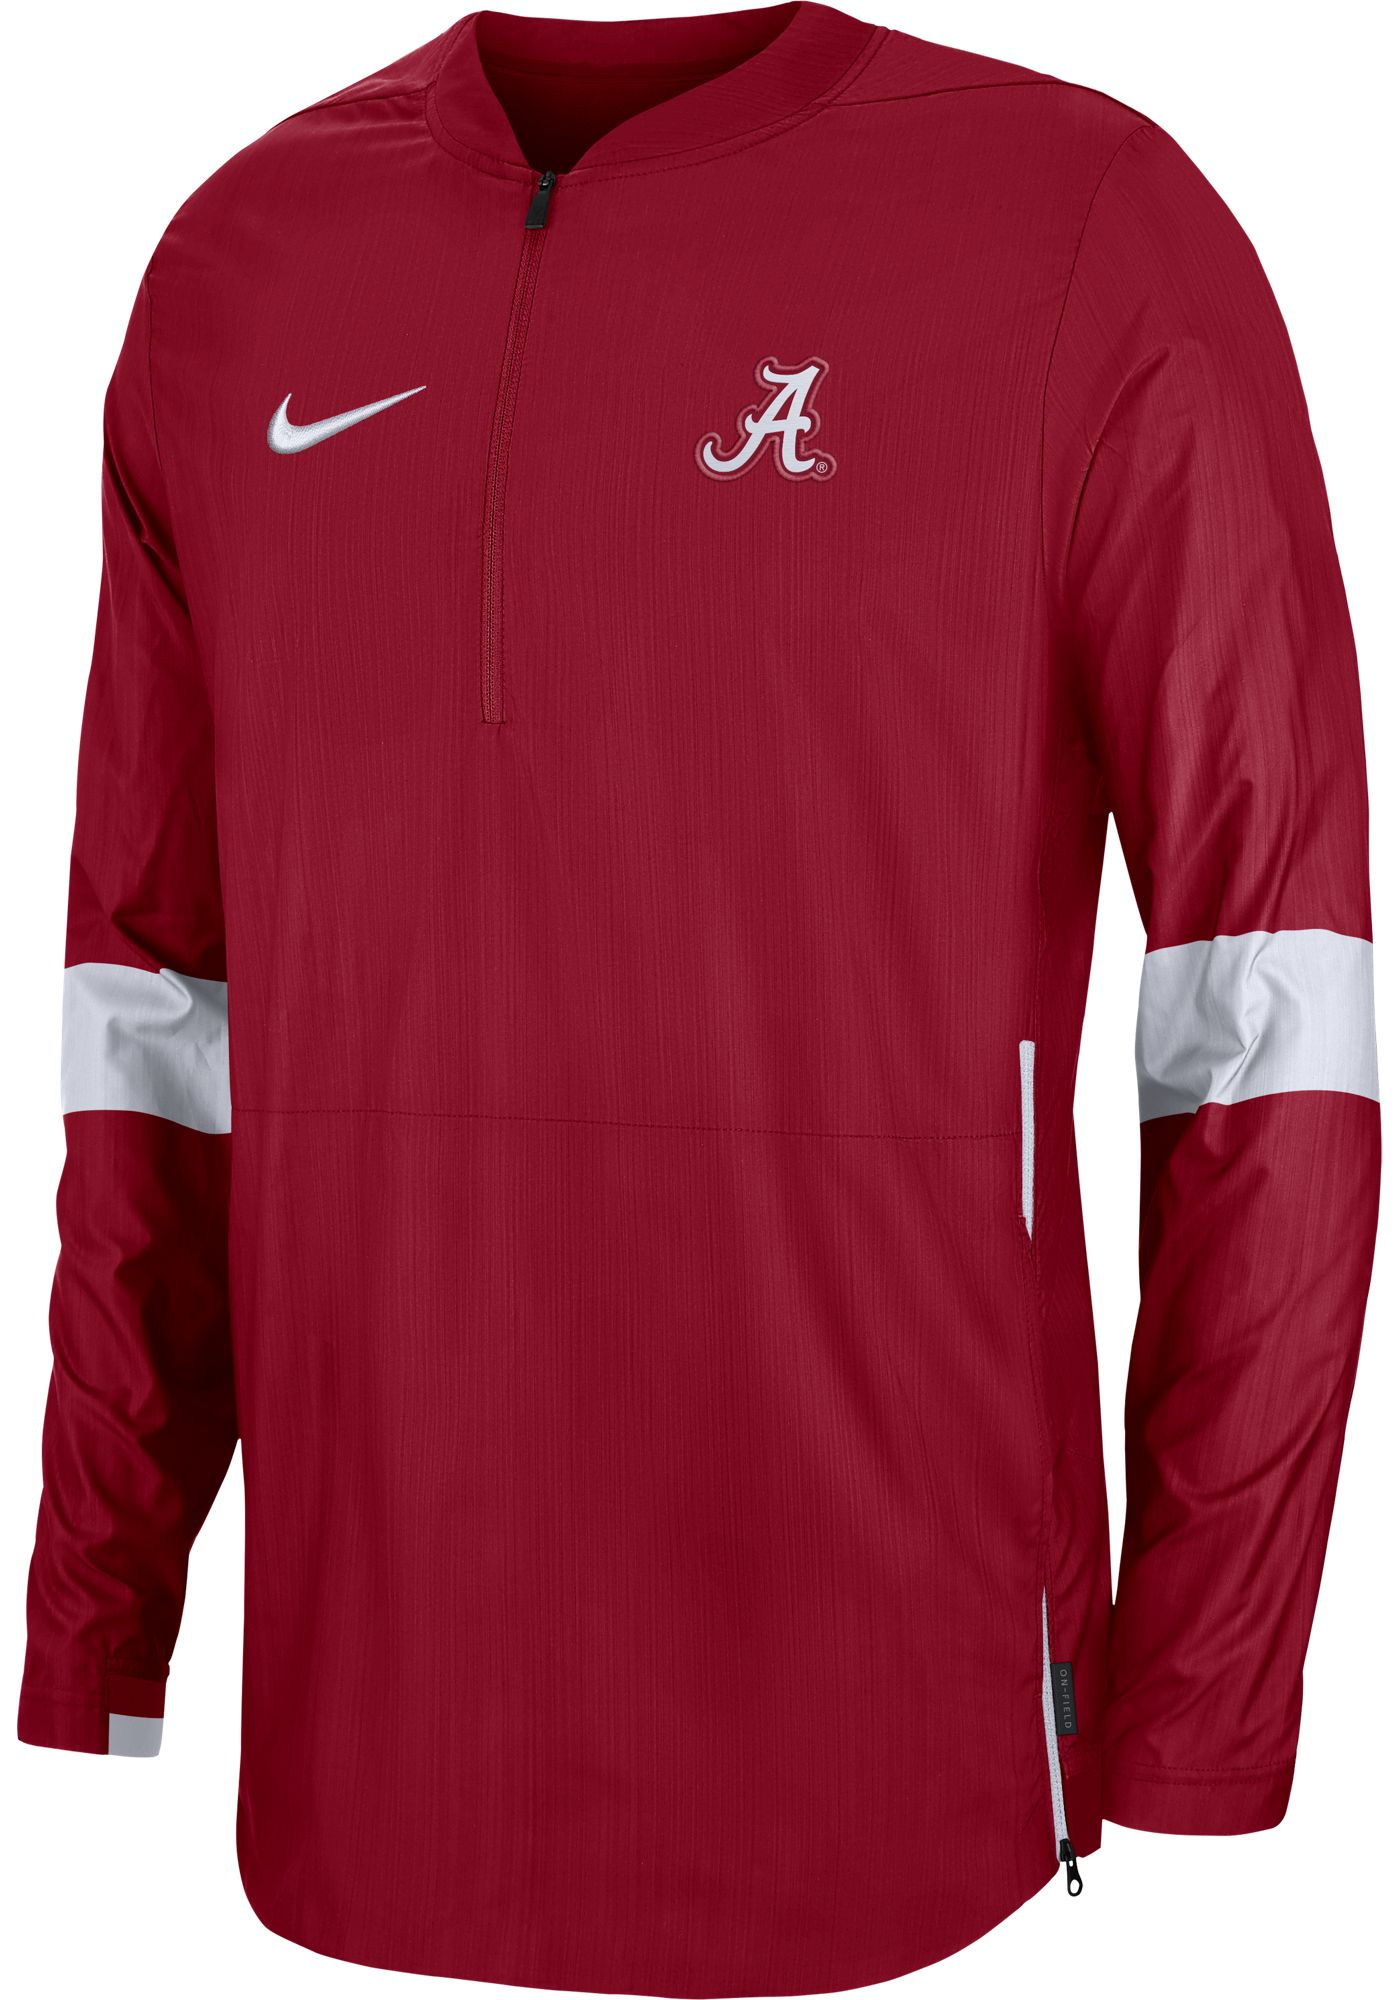 Nike Men's Alabama Crimson Tide Crimson Lockdown Half-Zip Football Jacket